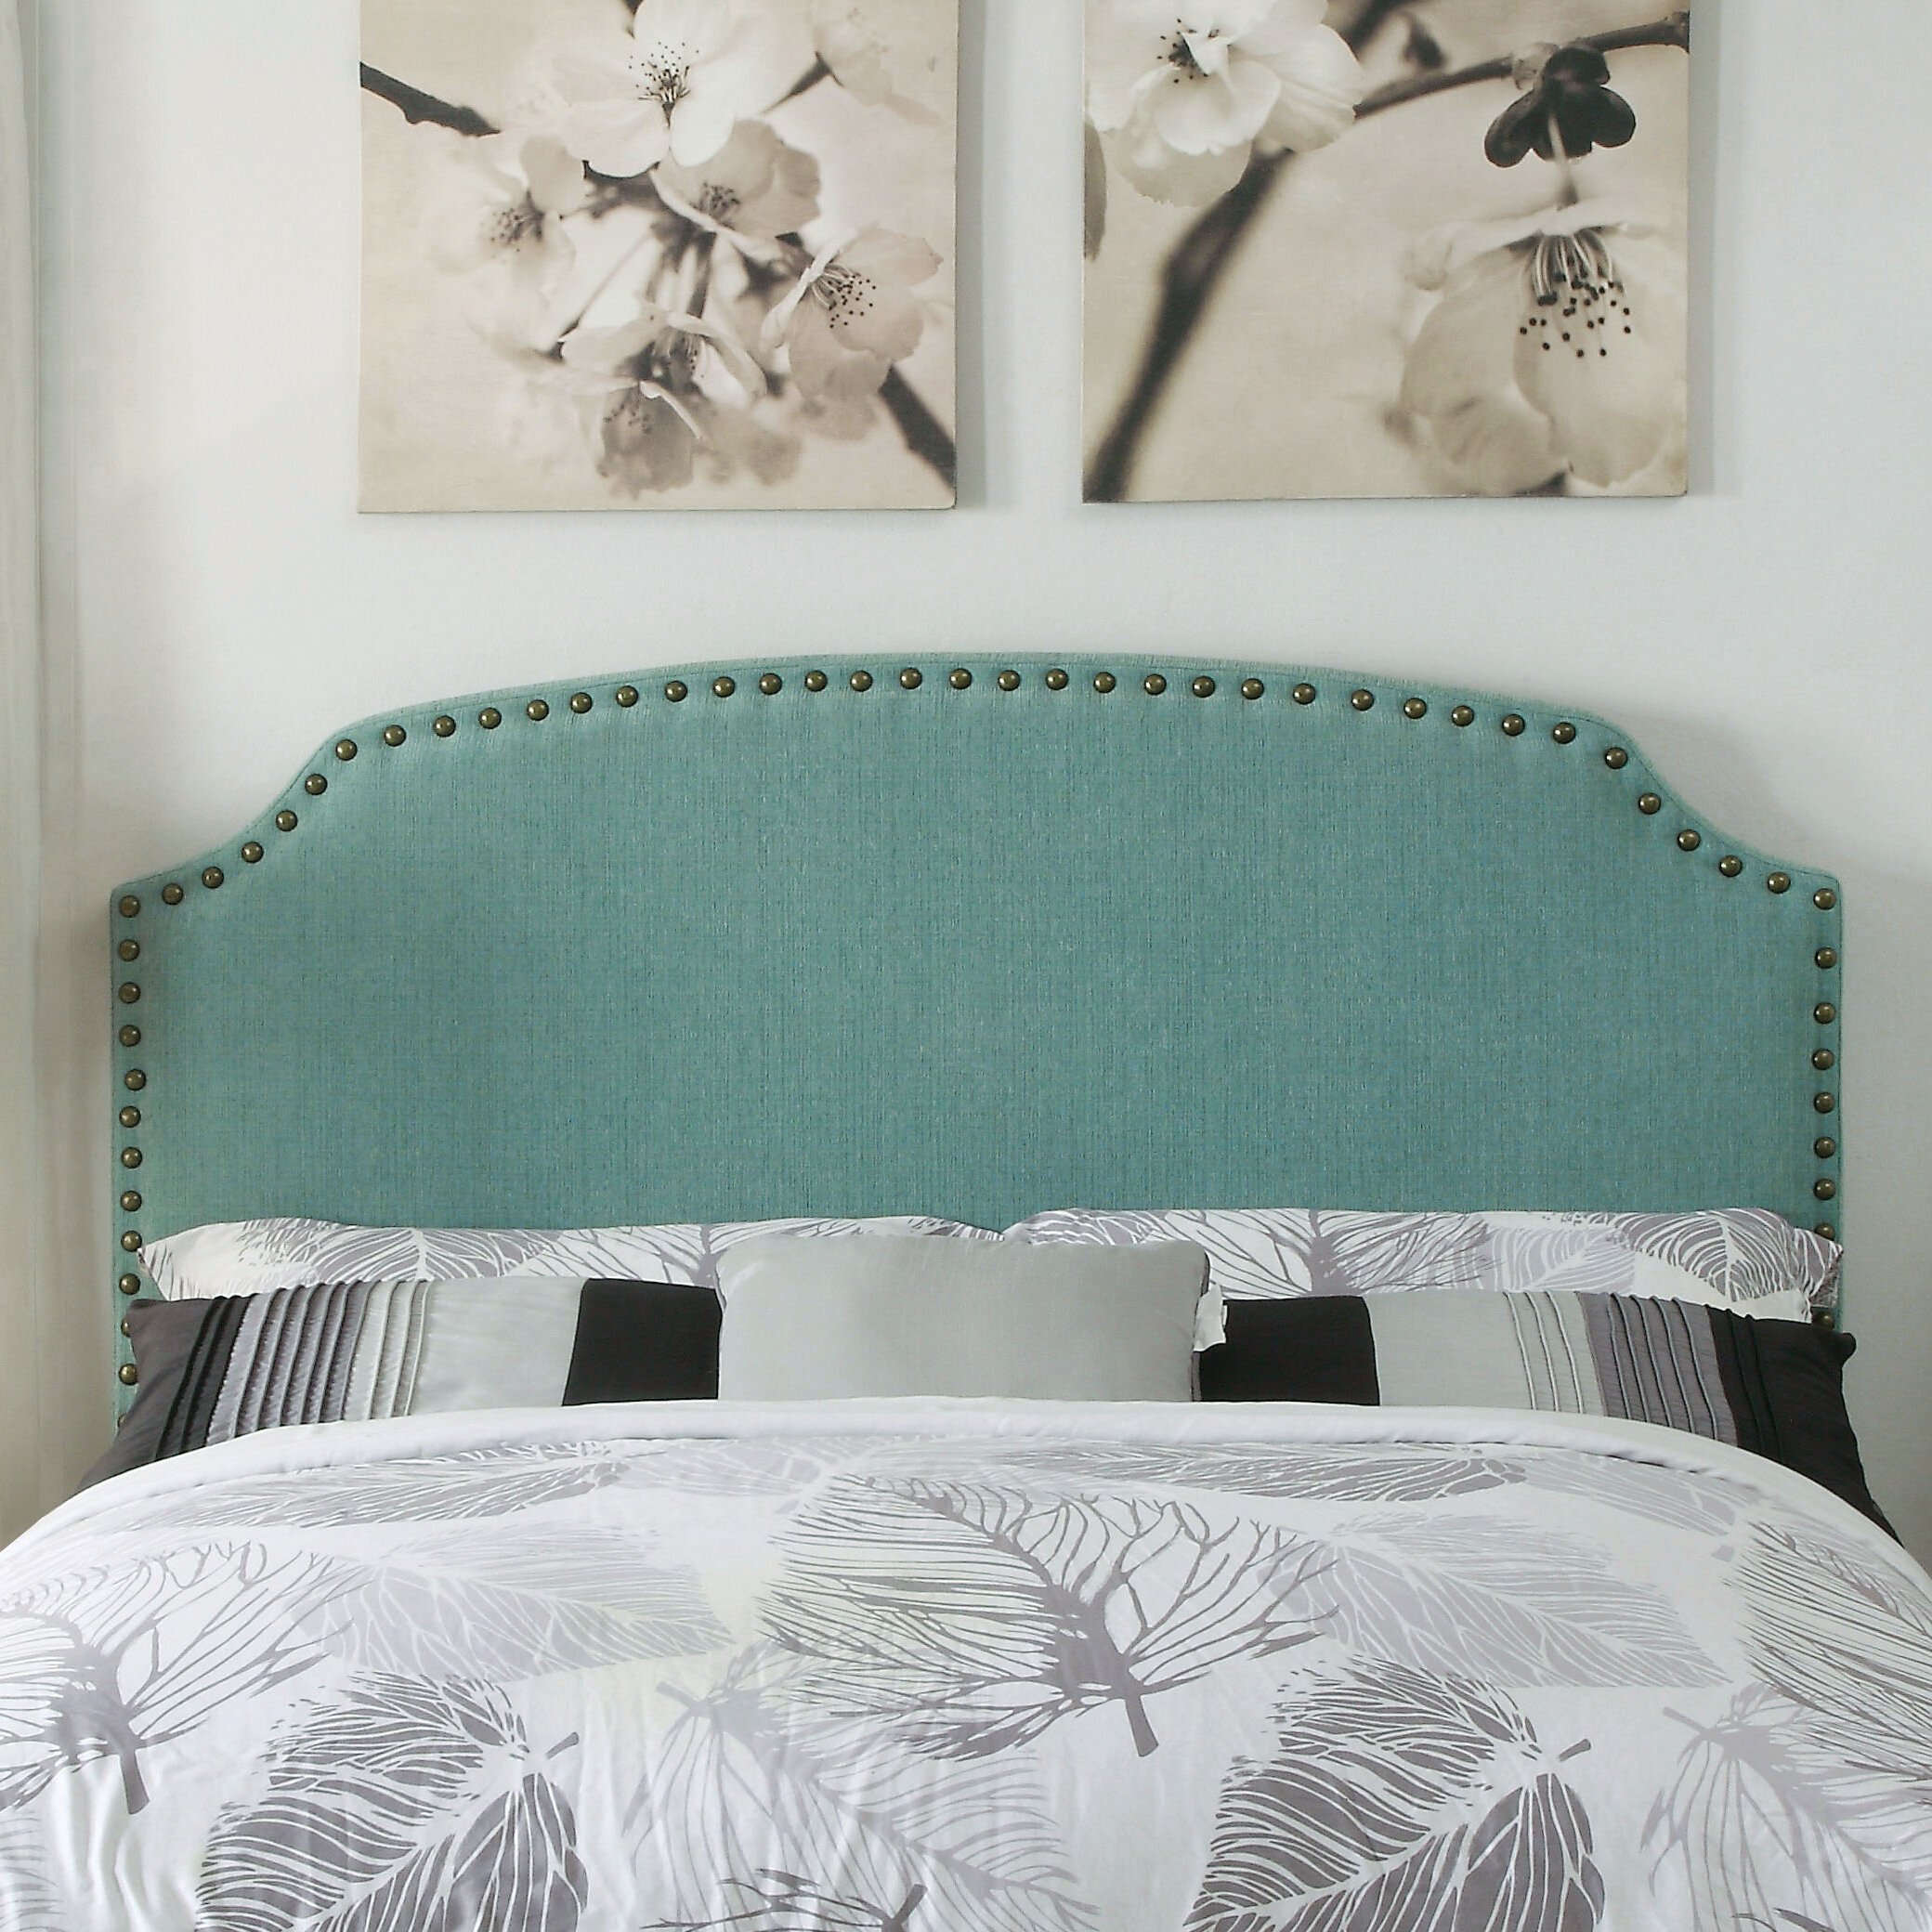 white diy teal original easy headboards of pillow style and ideas fabric design winsome paint for with seafoam bright green clever wooden quilt best classic bedroom wall bed exclusive headboard